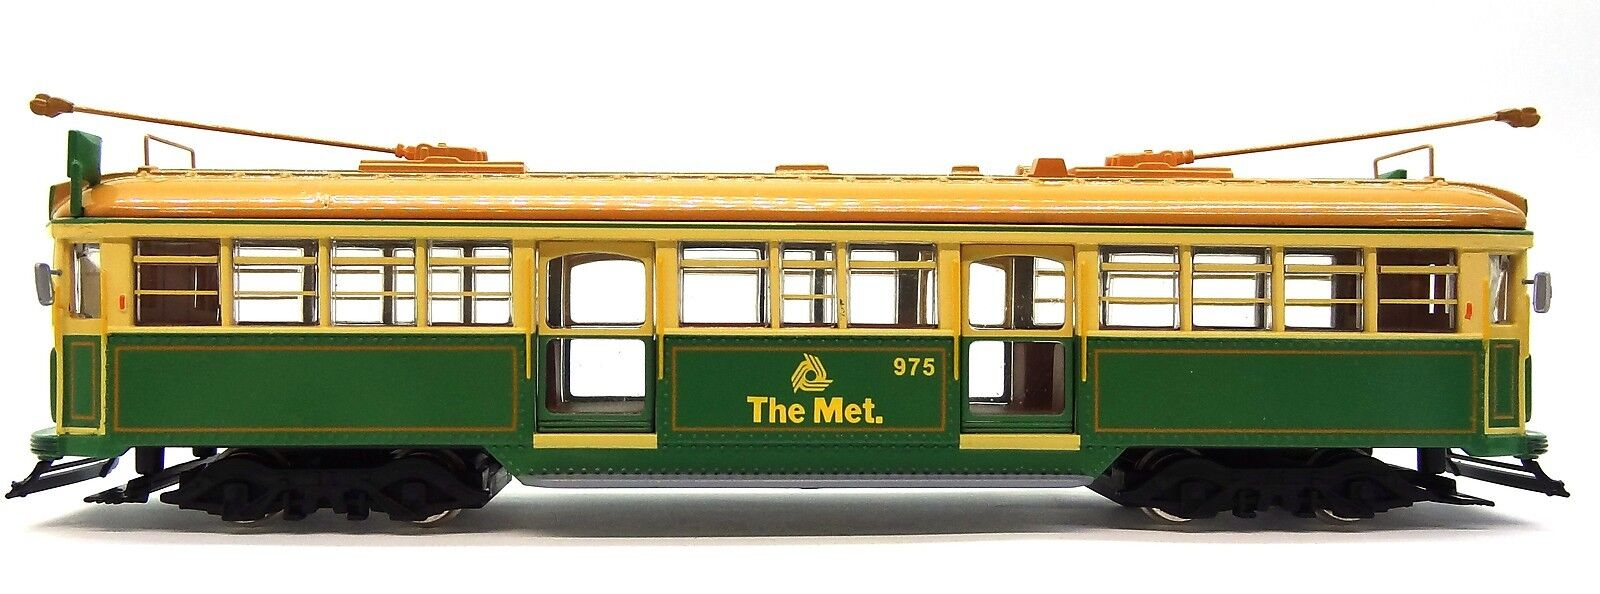 1 76 SCALE MELBOURNE W6 CLASS TRAM - THE MET GREEN RATTLER NO. 975